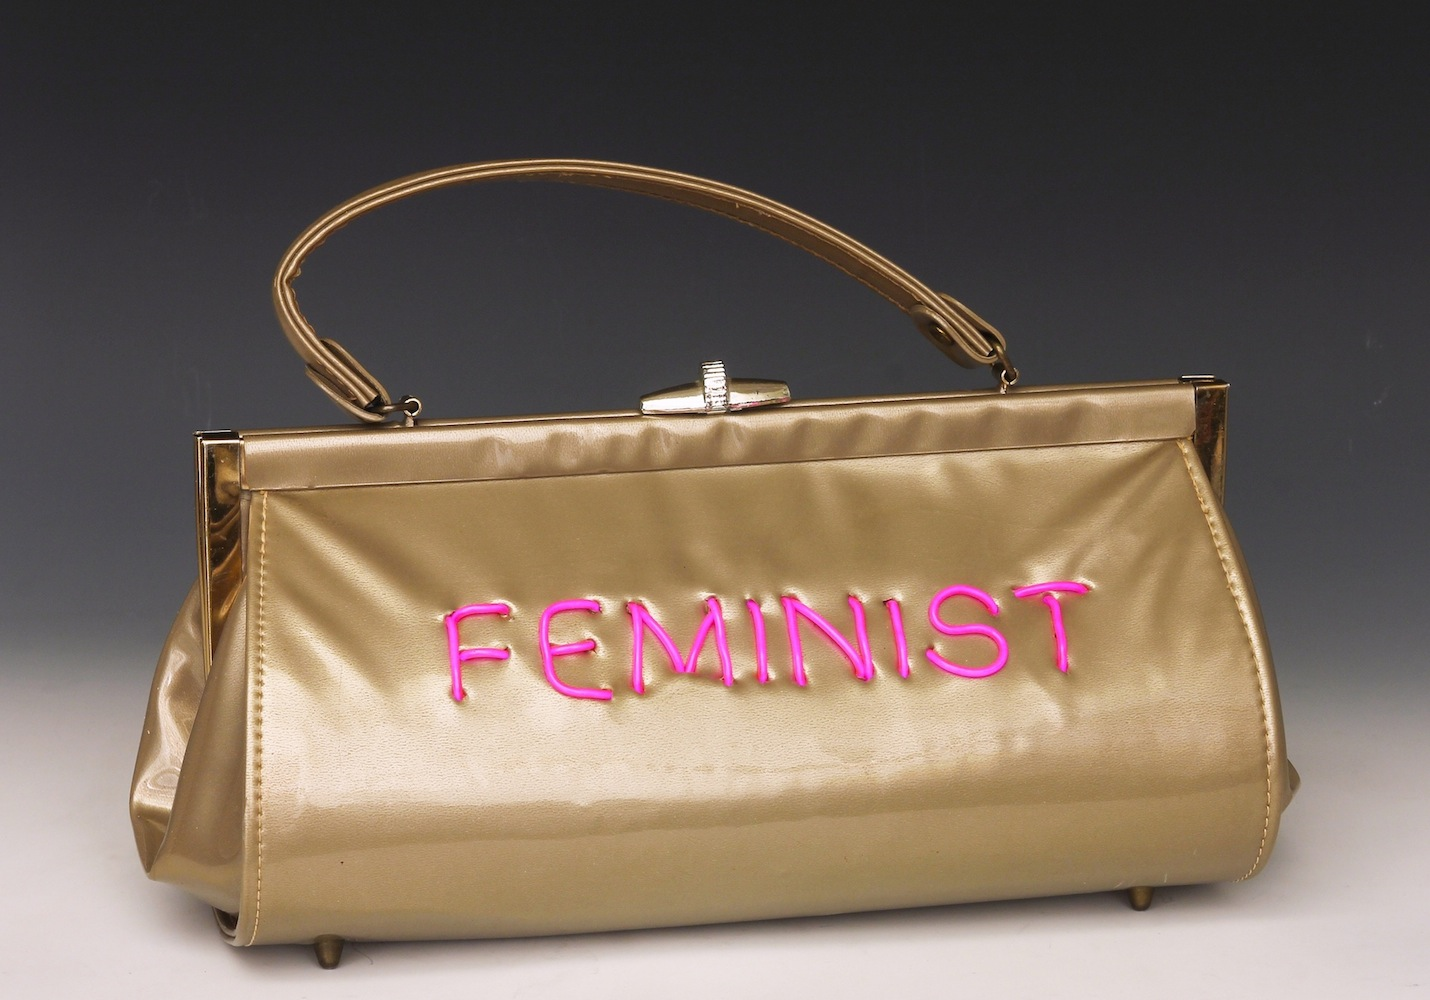 "Michele Pred   Feminist , 2015 electroluminescent wire on vintage purse 9"" x 14"" x 5"""